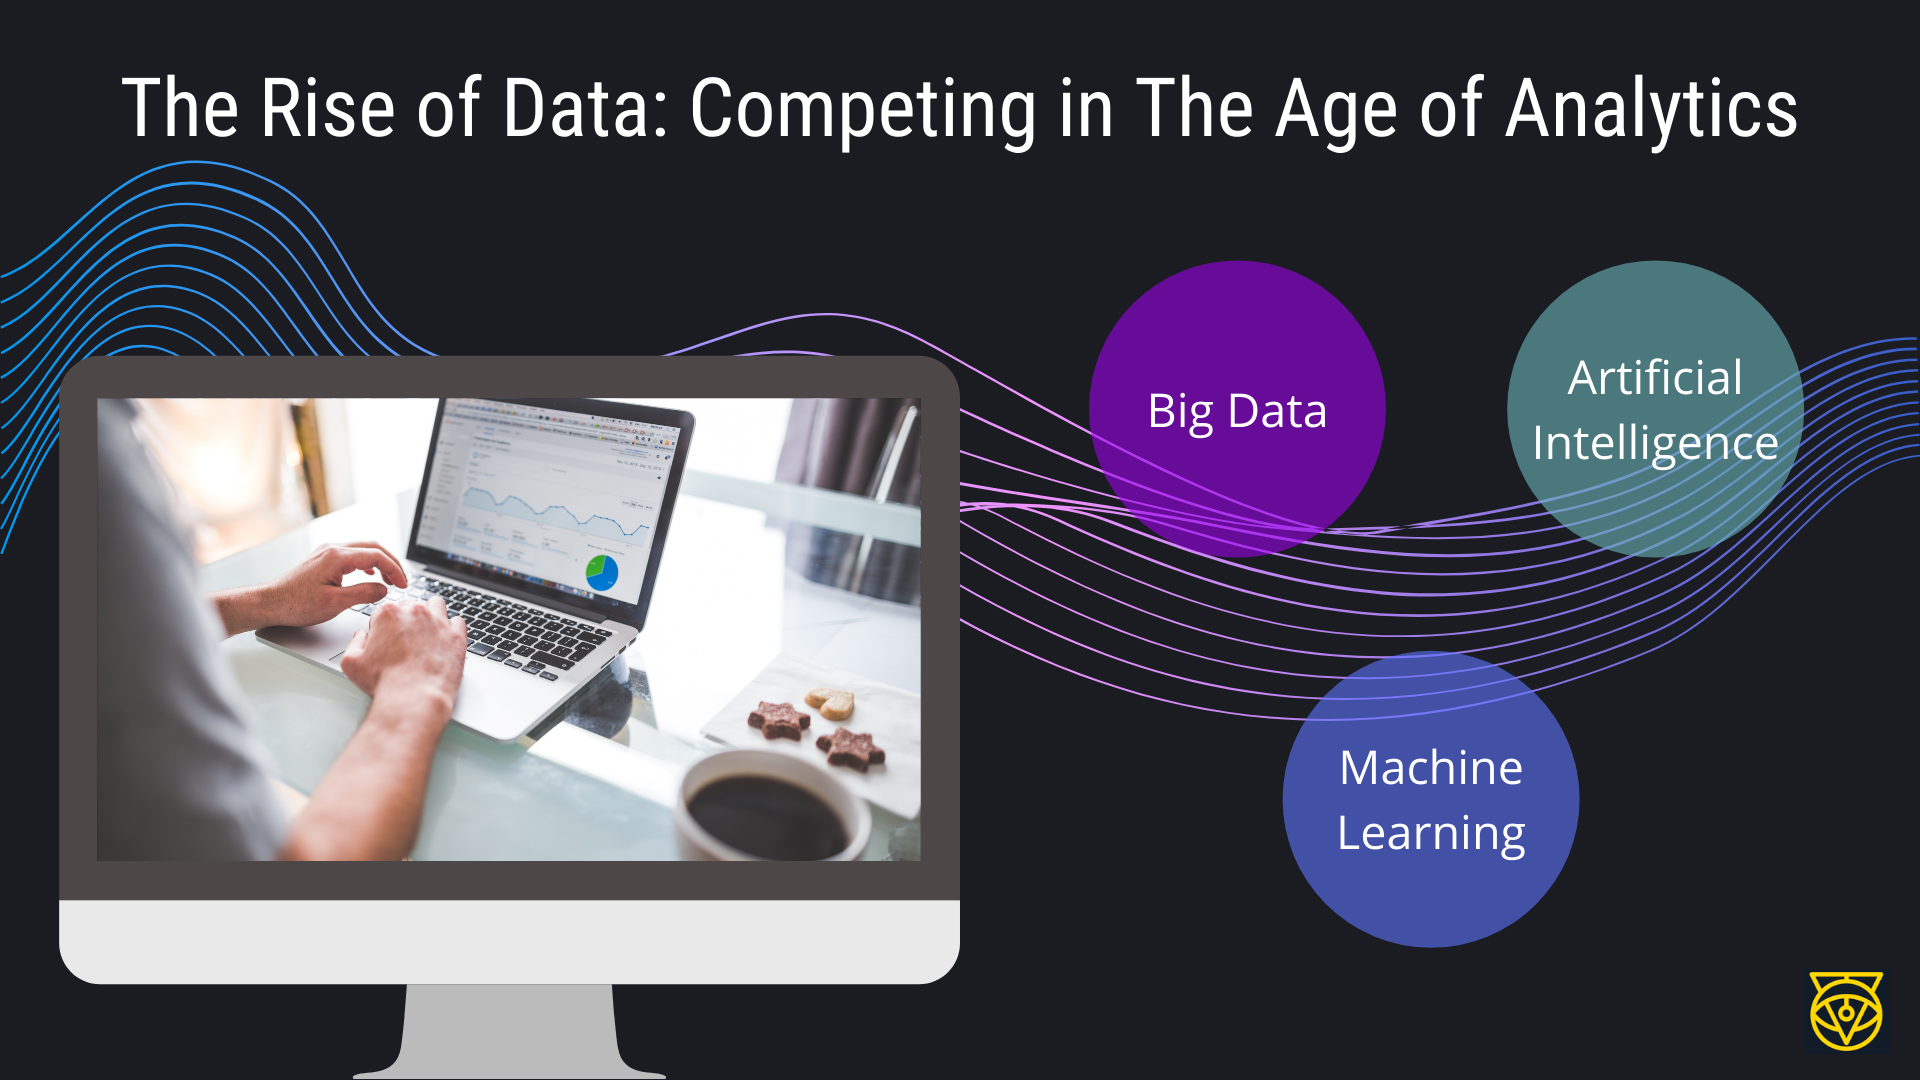 The Rise of Data: Competing in the Age of Analytics